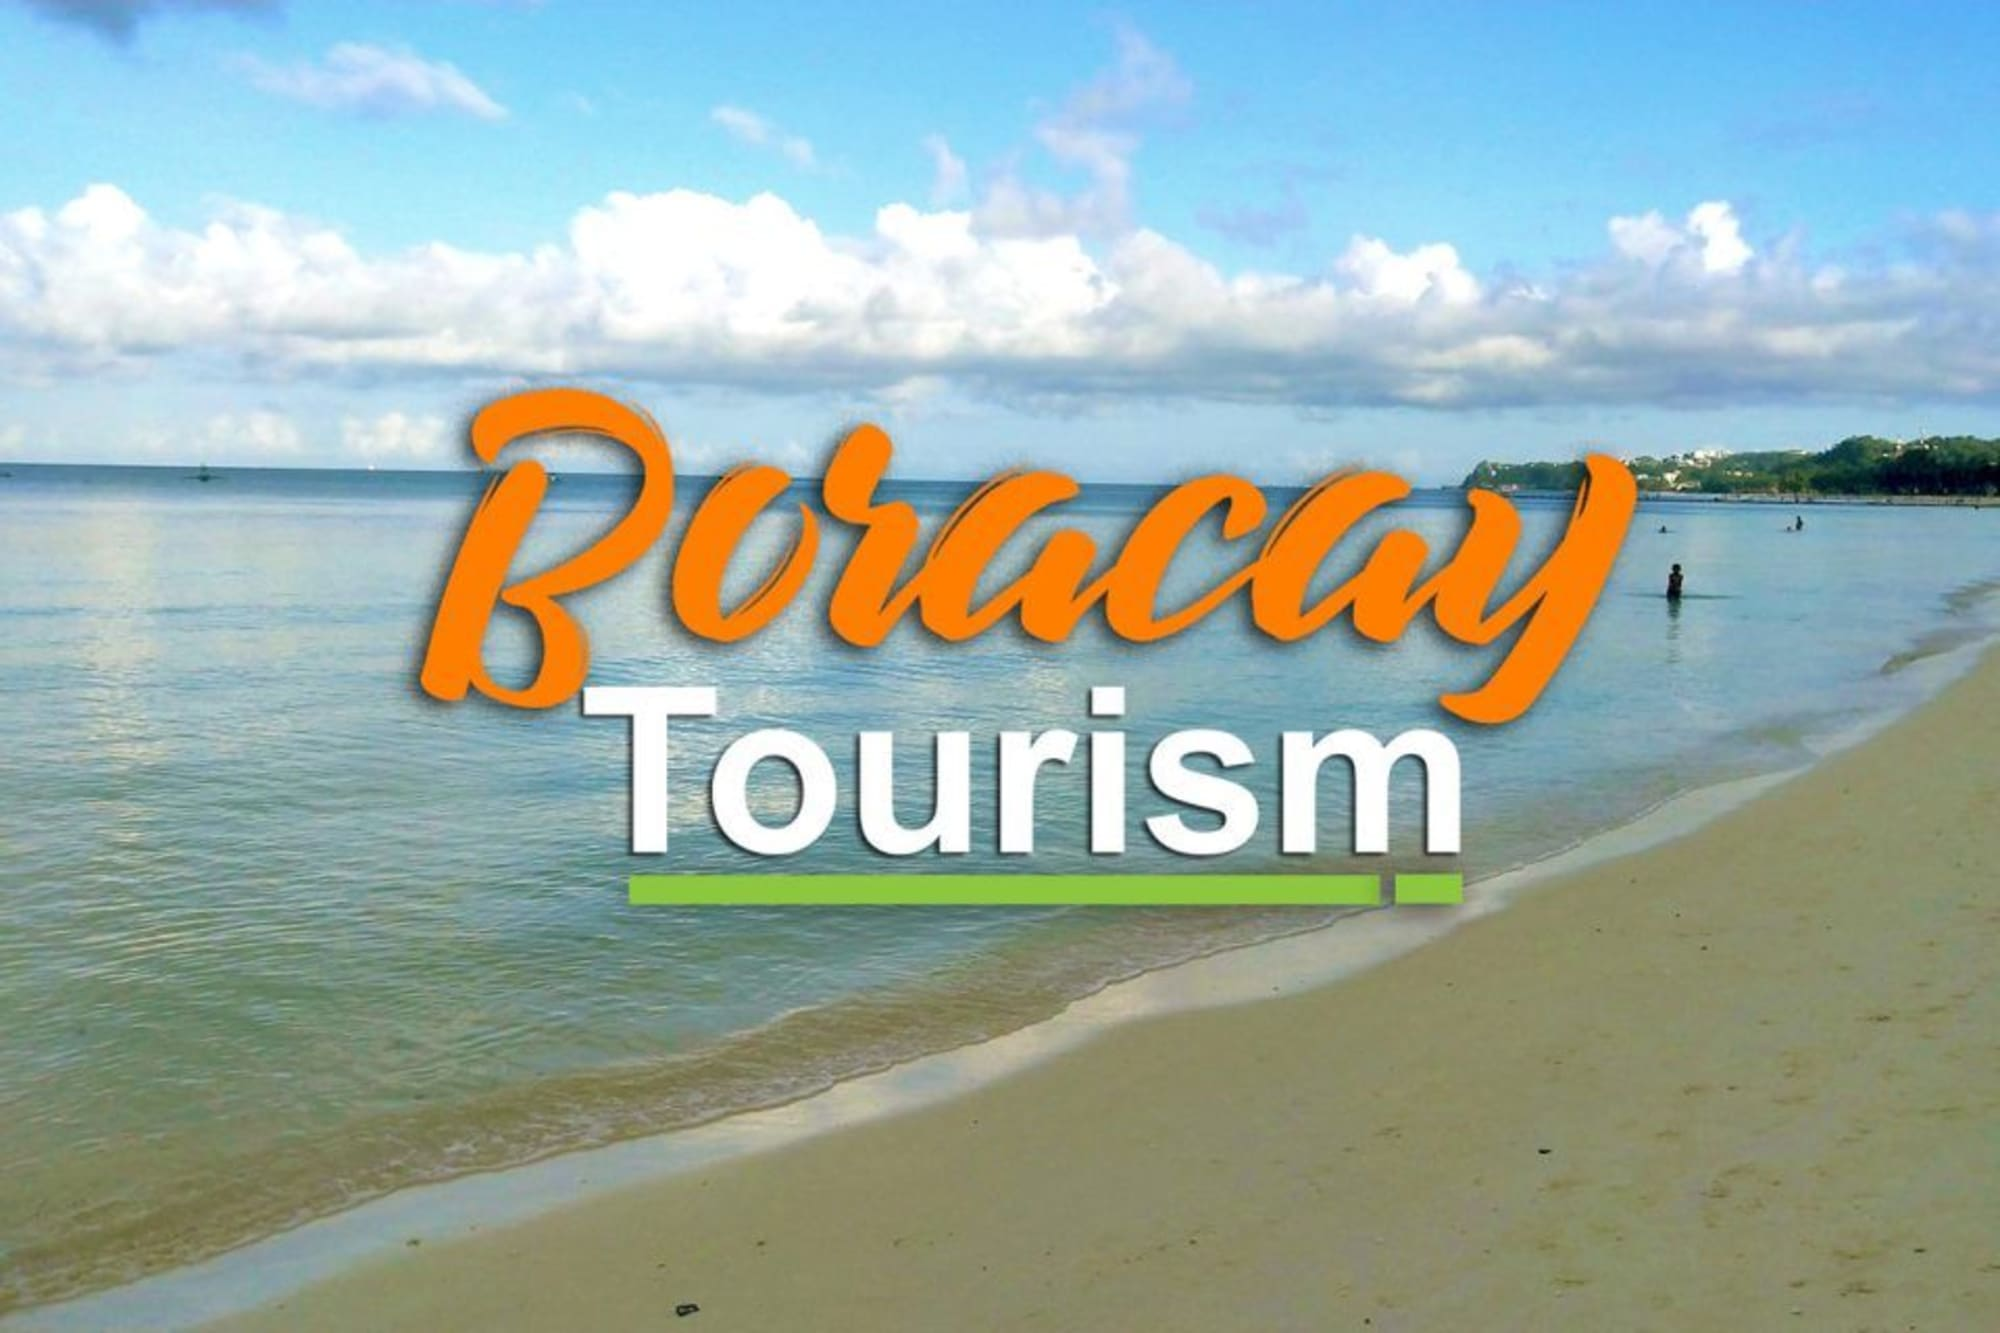 After Community Quarantine, Tourism in Boracay must resume immediately – The Governor